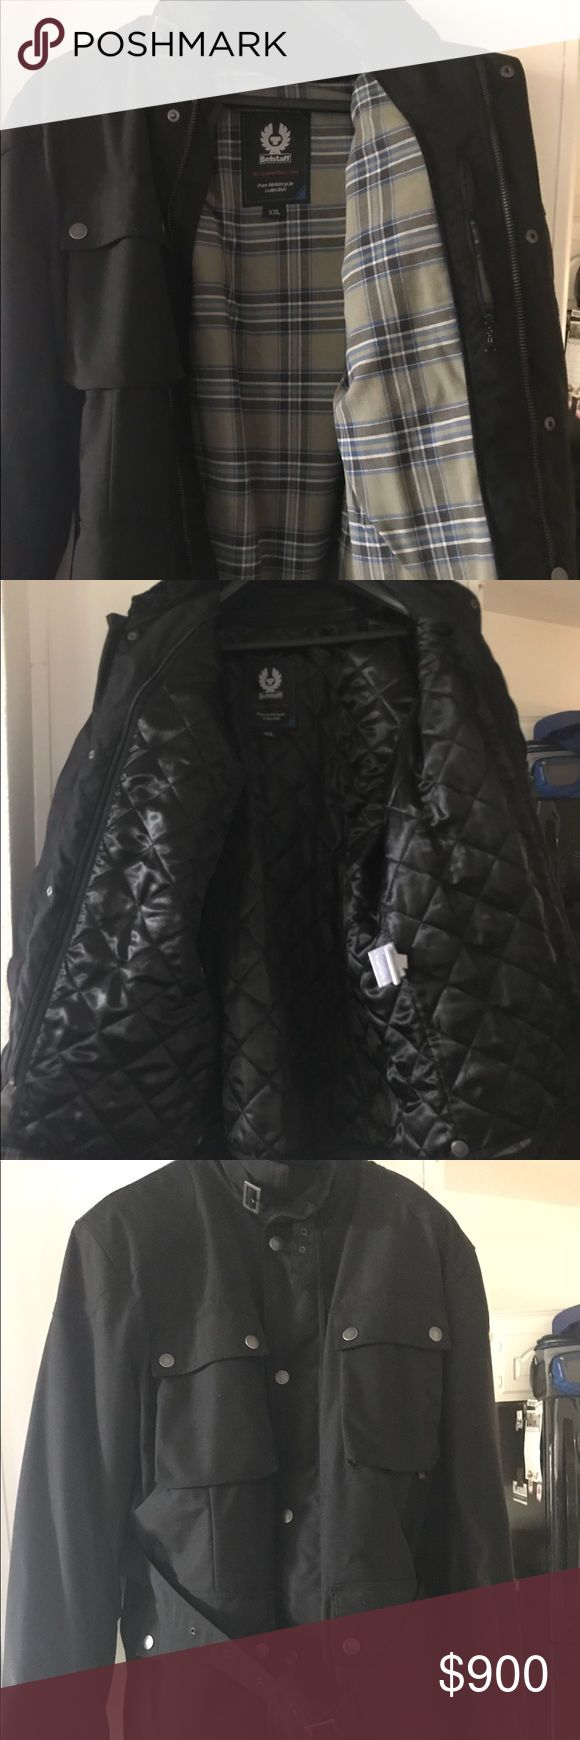 Belstaff road master motorcycle jacket NEW, NEVER WORN, Size XXL, black outside and plaid printed inside  Armor embedded in elbows and shoulders, Cordura fabric, weather resistant, Zip out quilted vest included, 4 outside pockets & 1 zippered inside pocket   European size XXL, about a US size XL Belstaff Jackets & Coats Performance Jackets